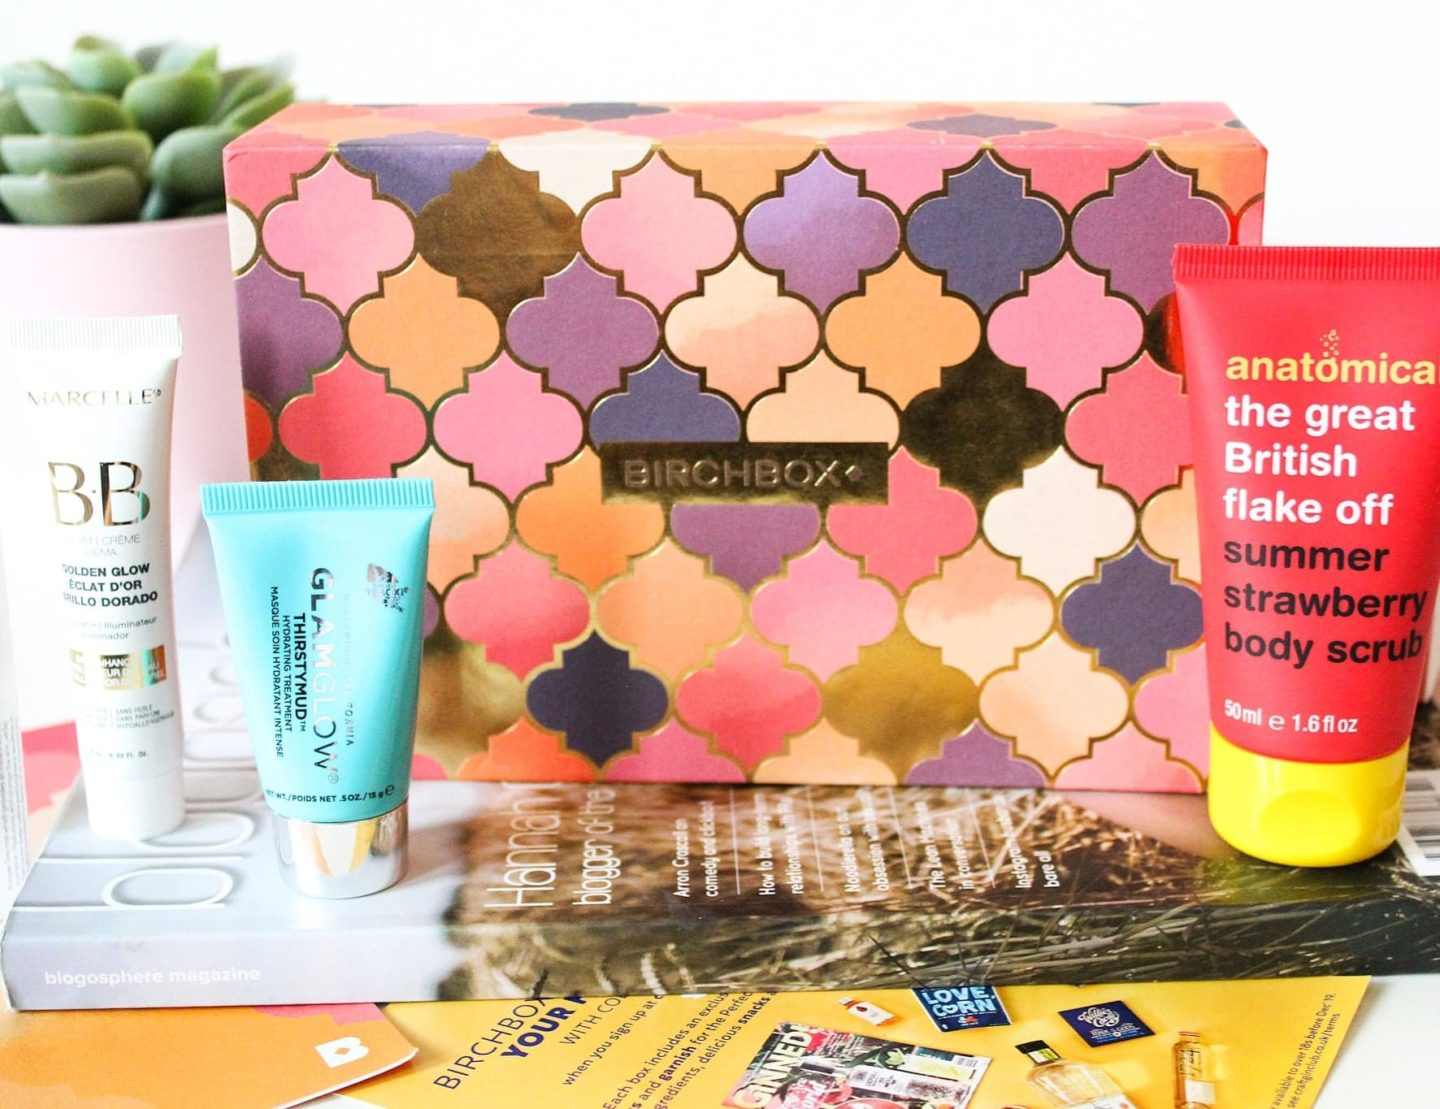 The Summer Lovin' Birchbox | The Most Disappointing Beauty Box Ever?